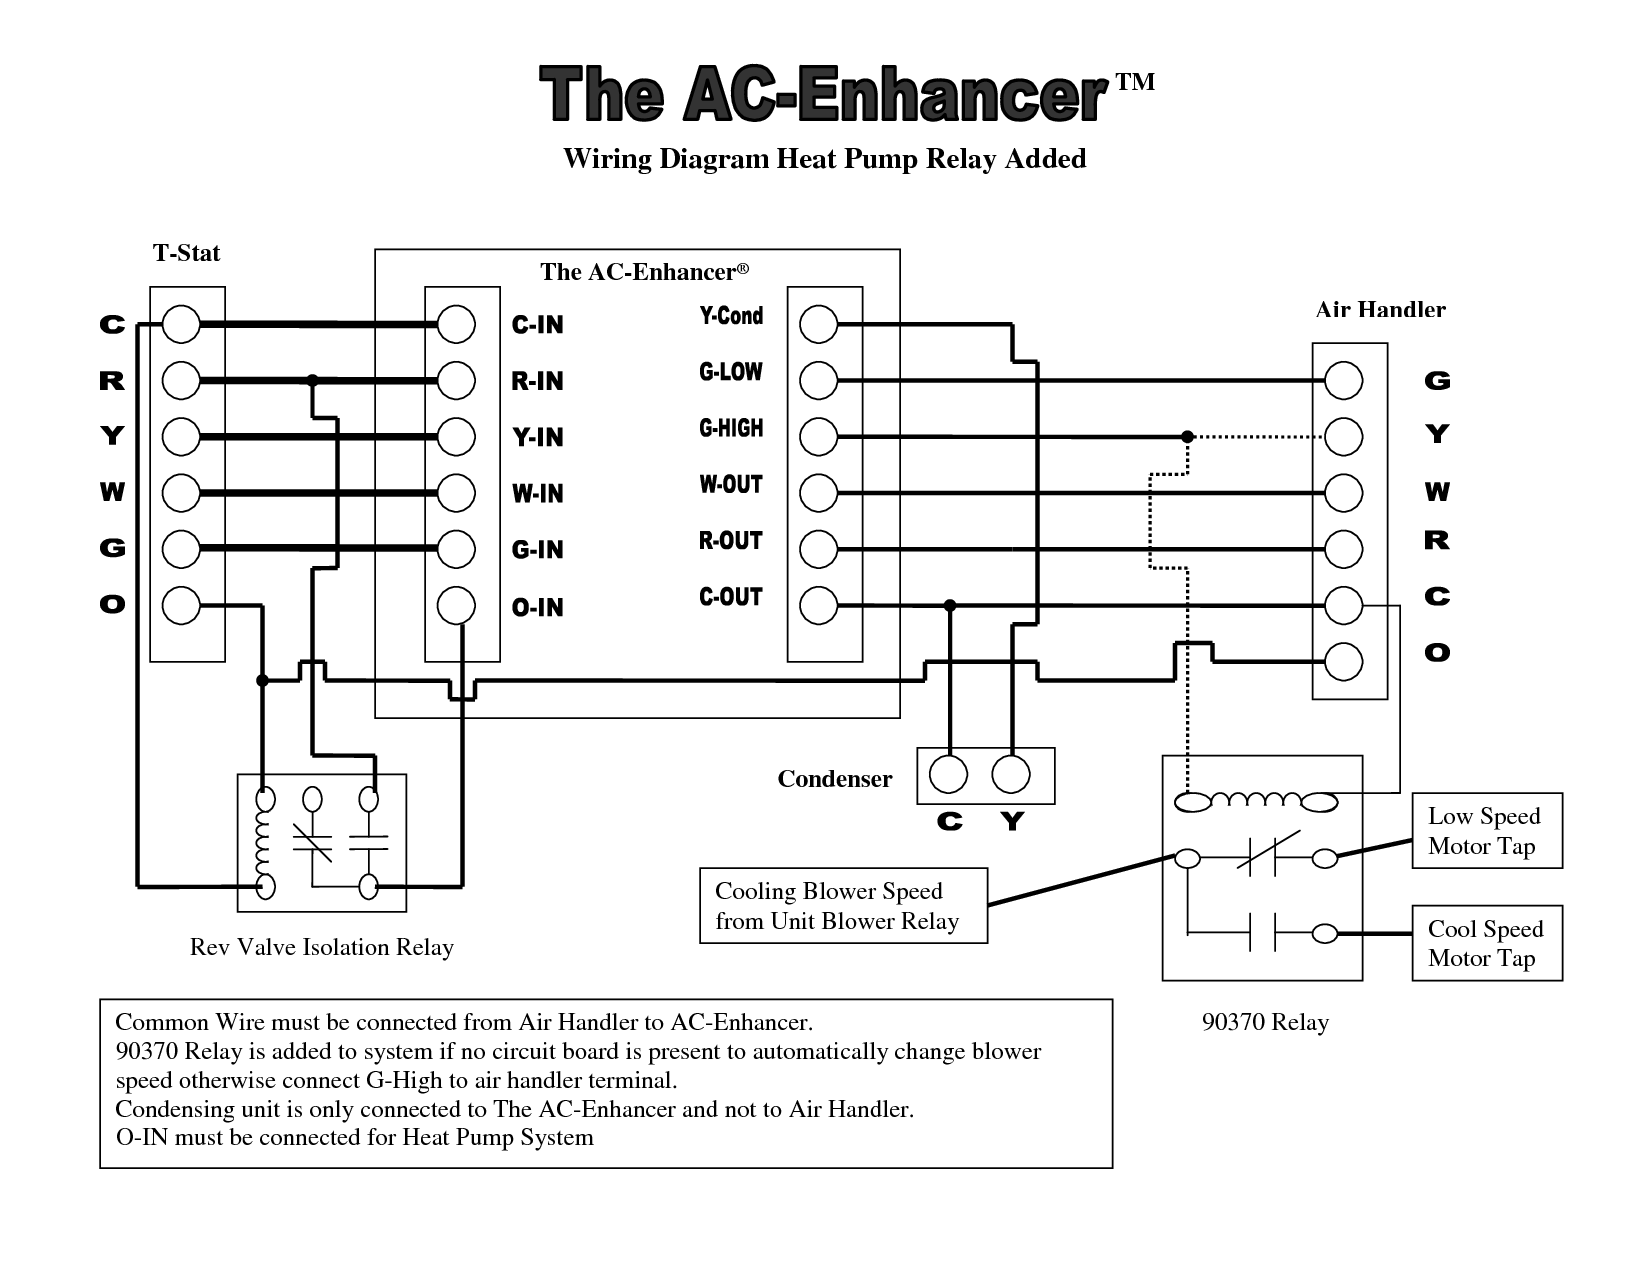 5a0e10d9c7d3fced962dfa588f6c0c31 hvac wiring diagram www automanualparts com hvac wiring hvac wiring schematics at eliteediting.co